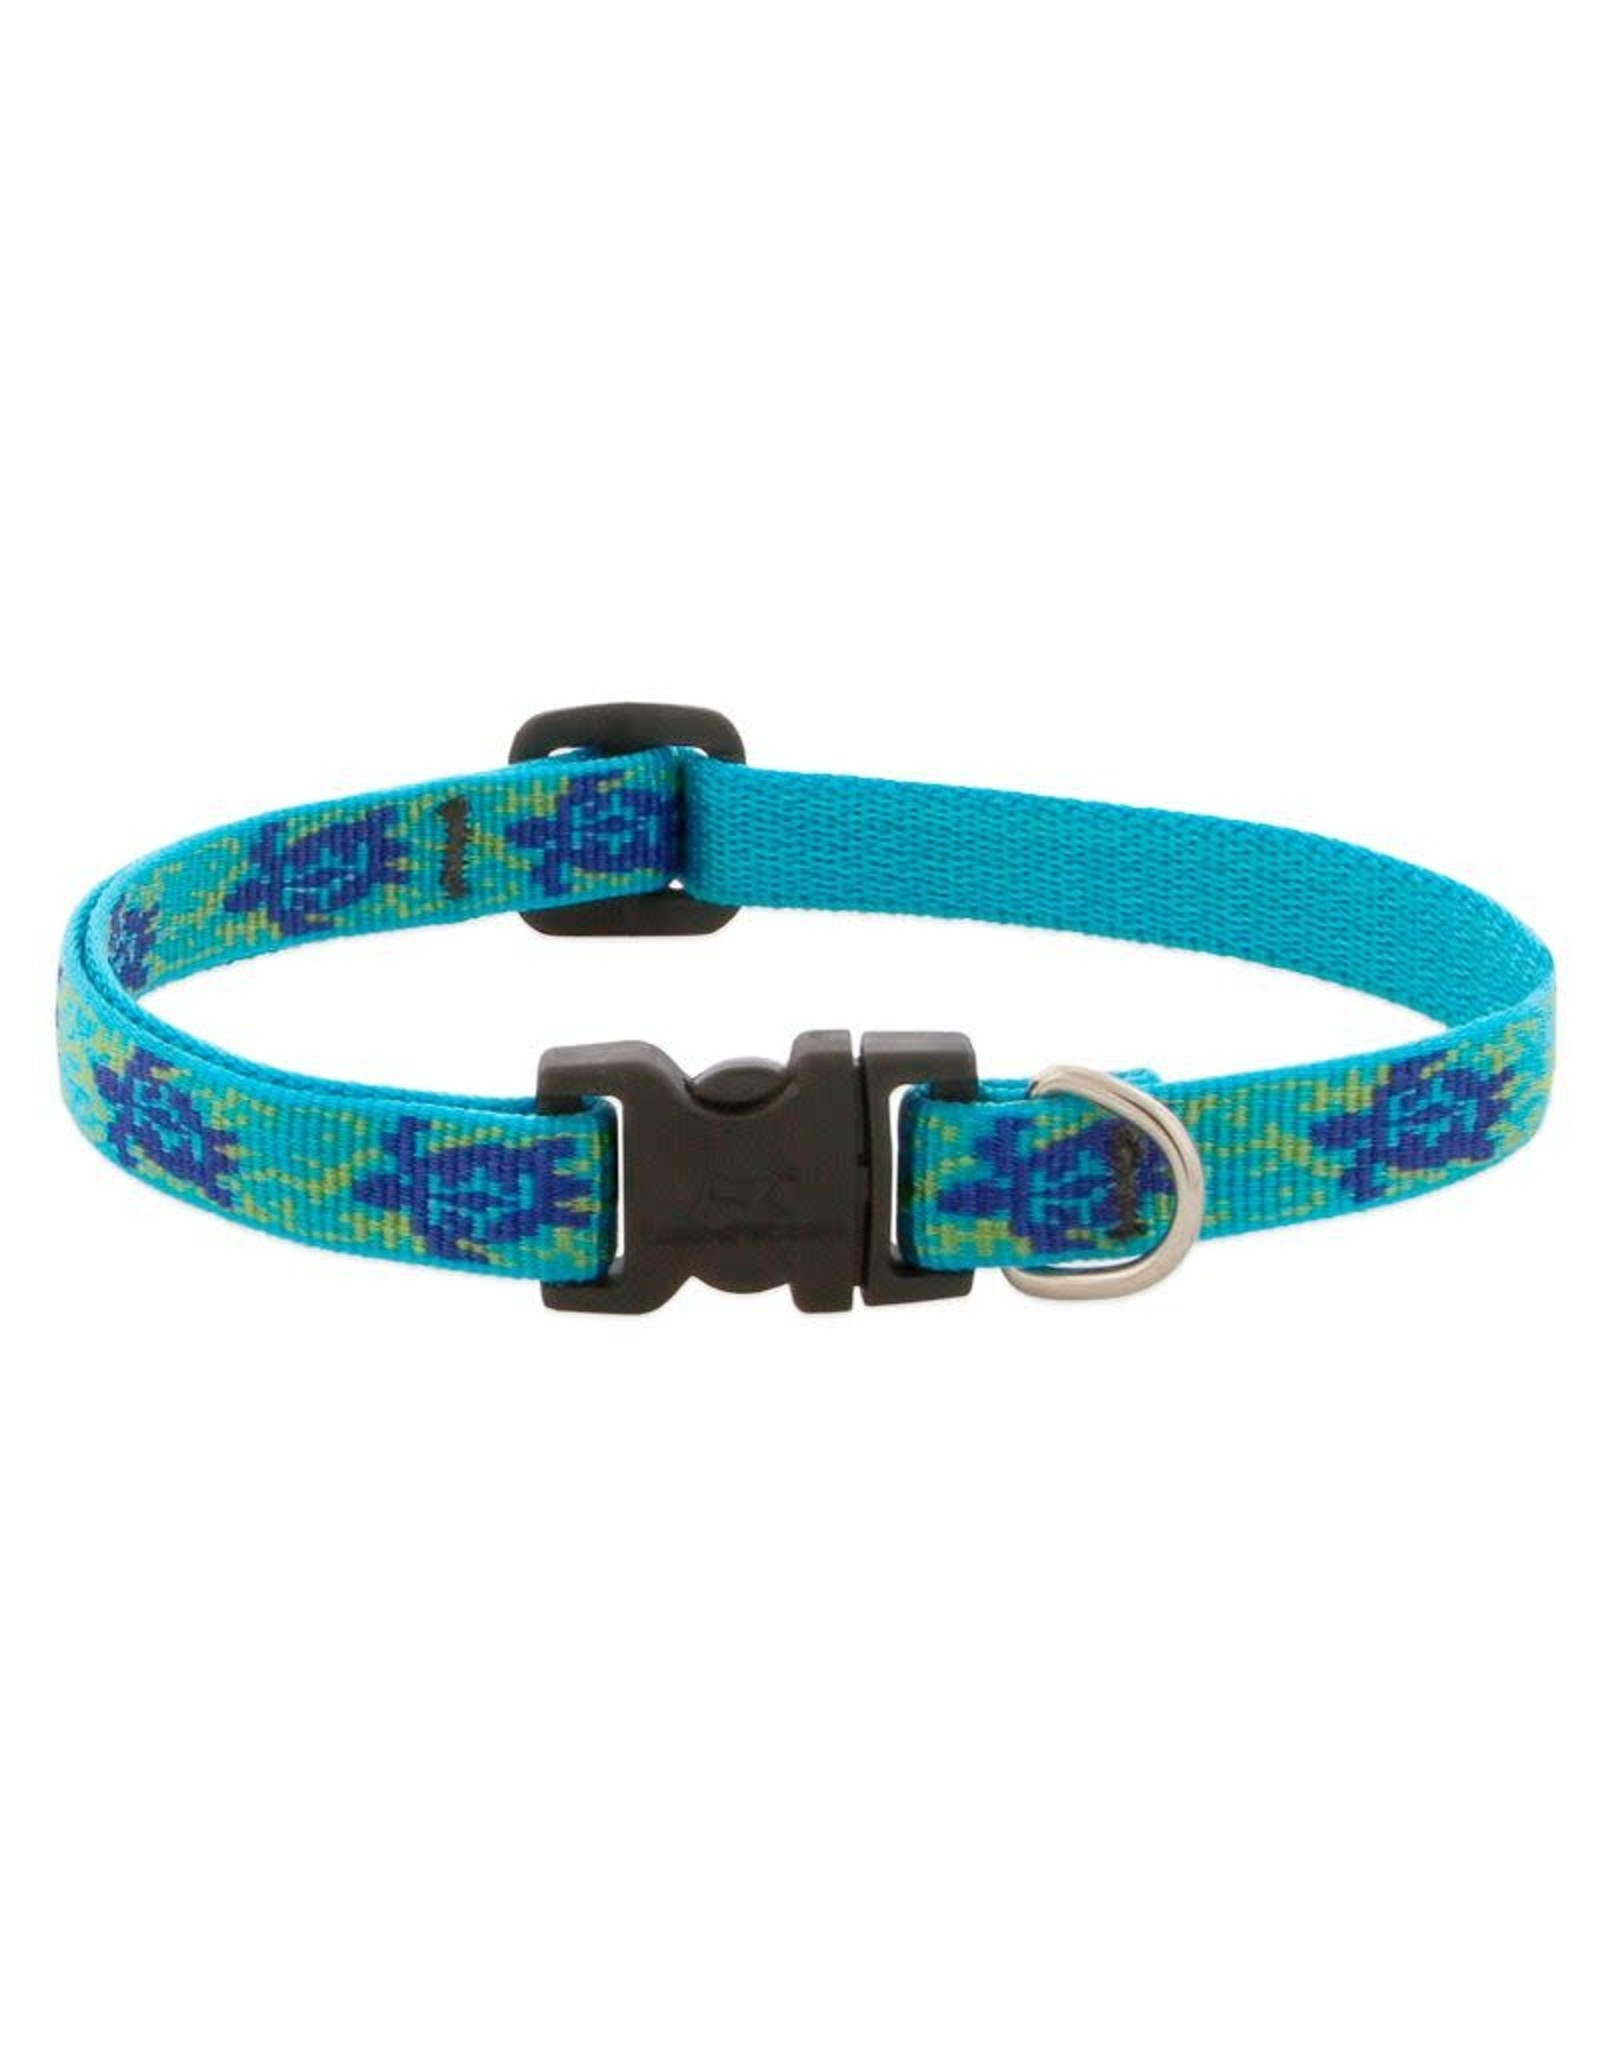 Lupine Lupine Turtle Reef Collar: 1/2 in wide, 8-12 inch